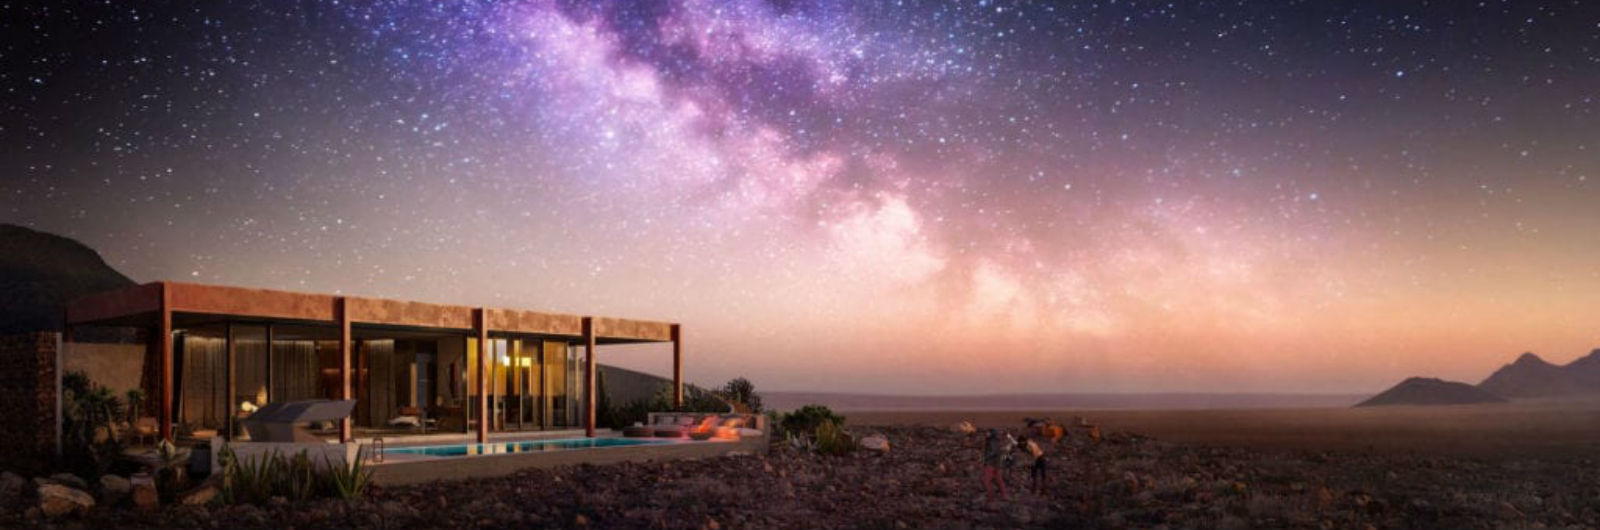 A Desert Retreat at the Foot of Ancient Mountains